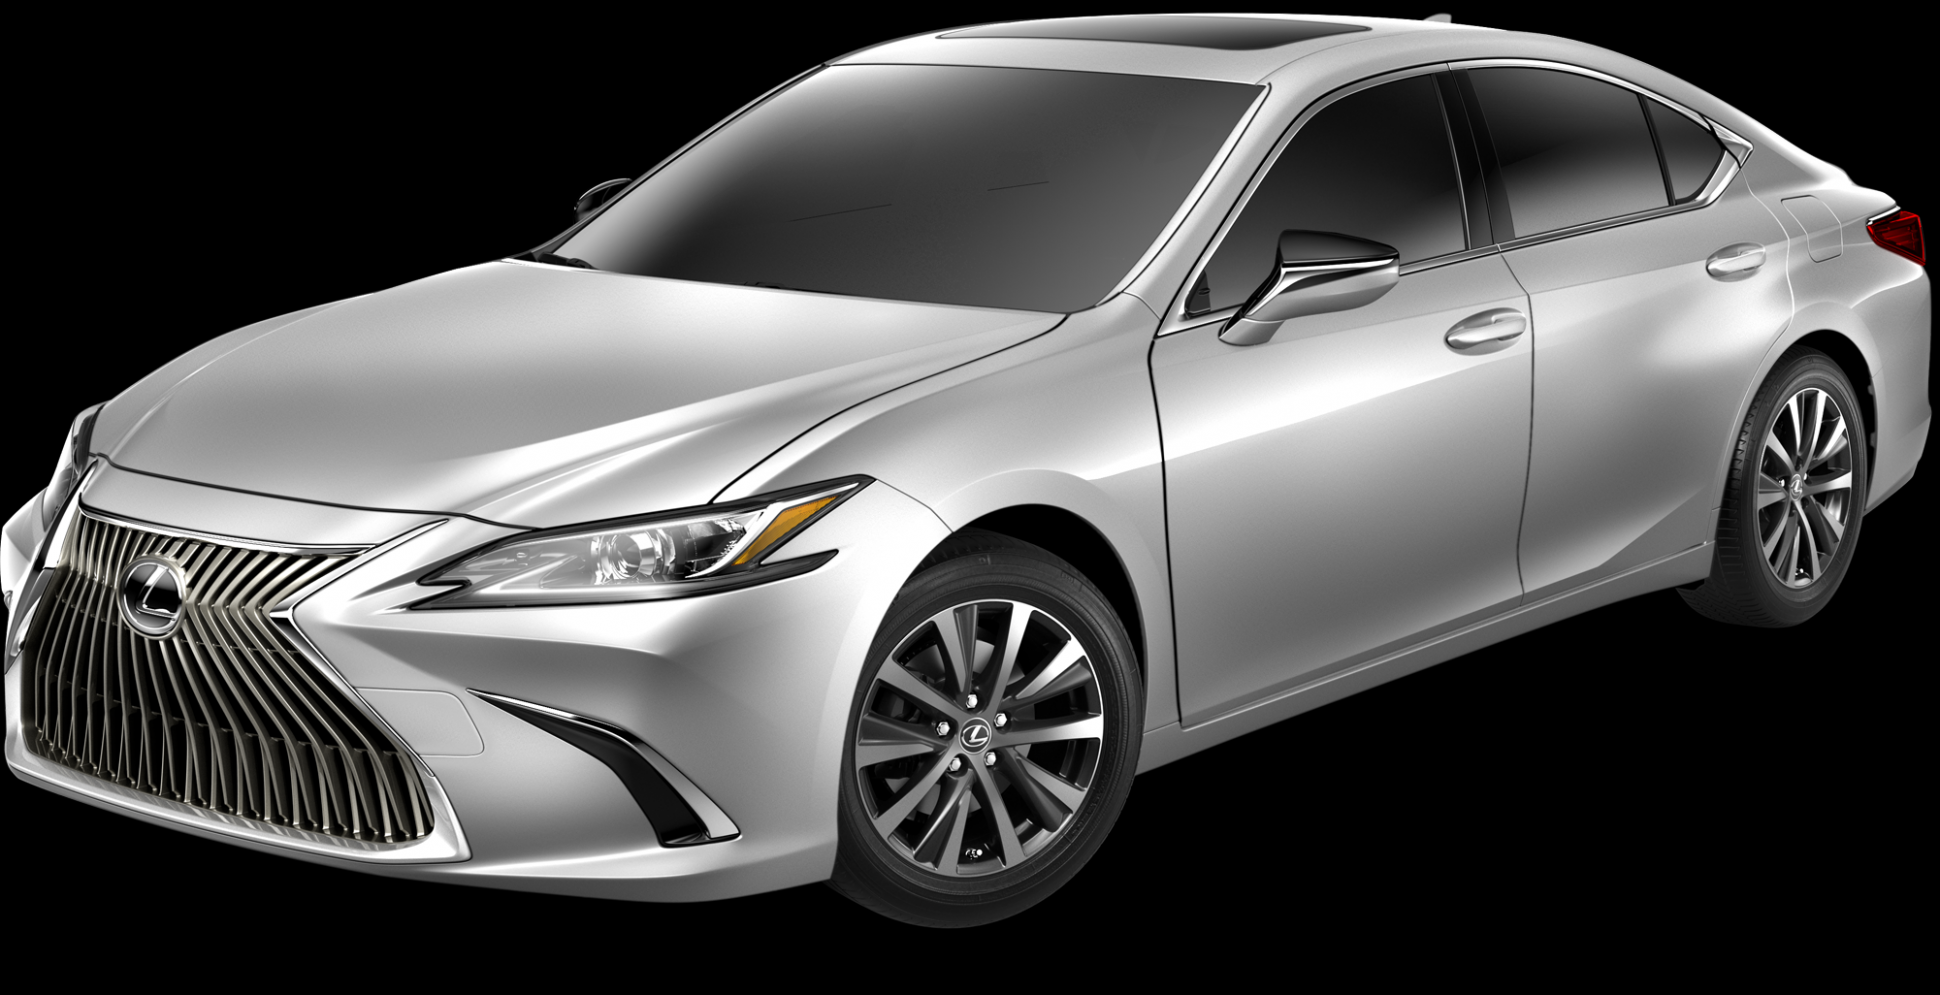 7 Lexus ES 7 Incentives, Specials & Offers in Austin TX - 2020 lexus es kbb